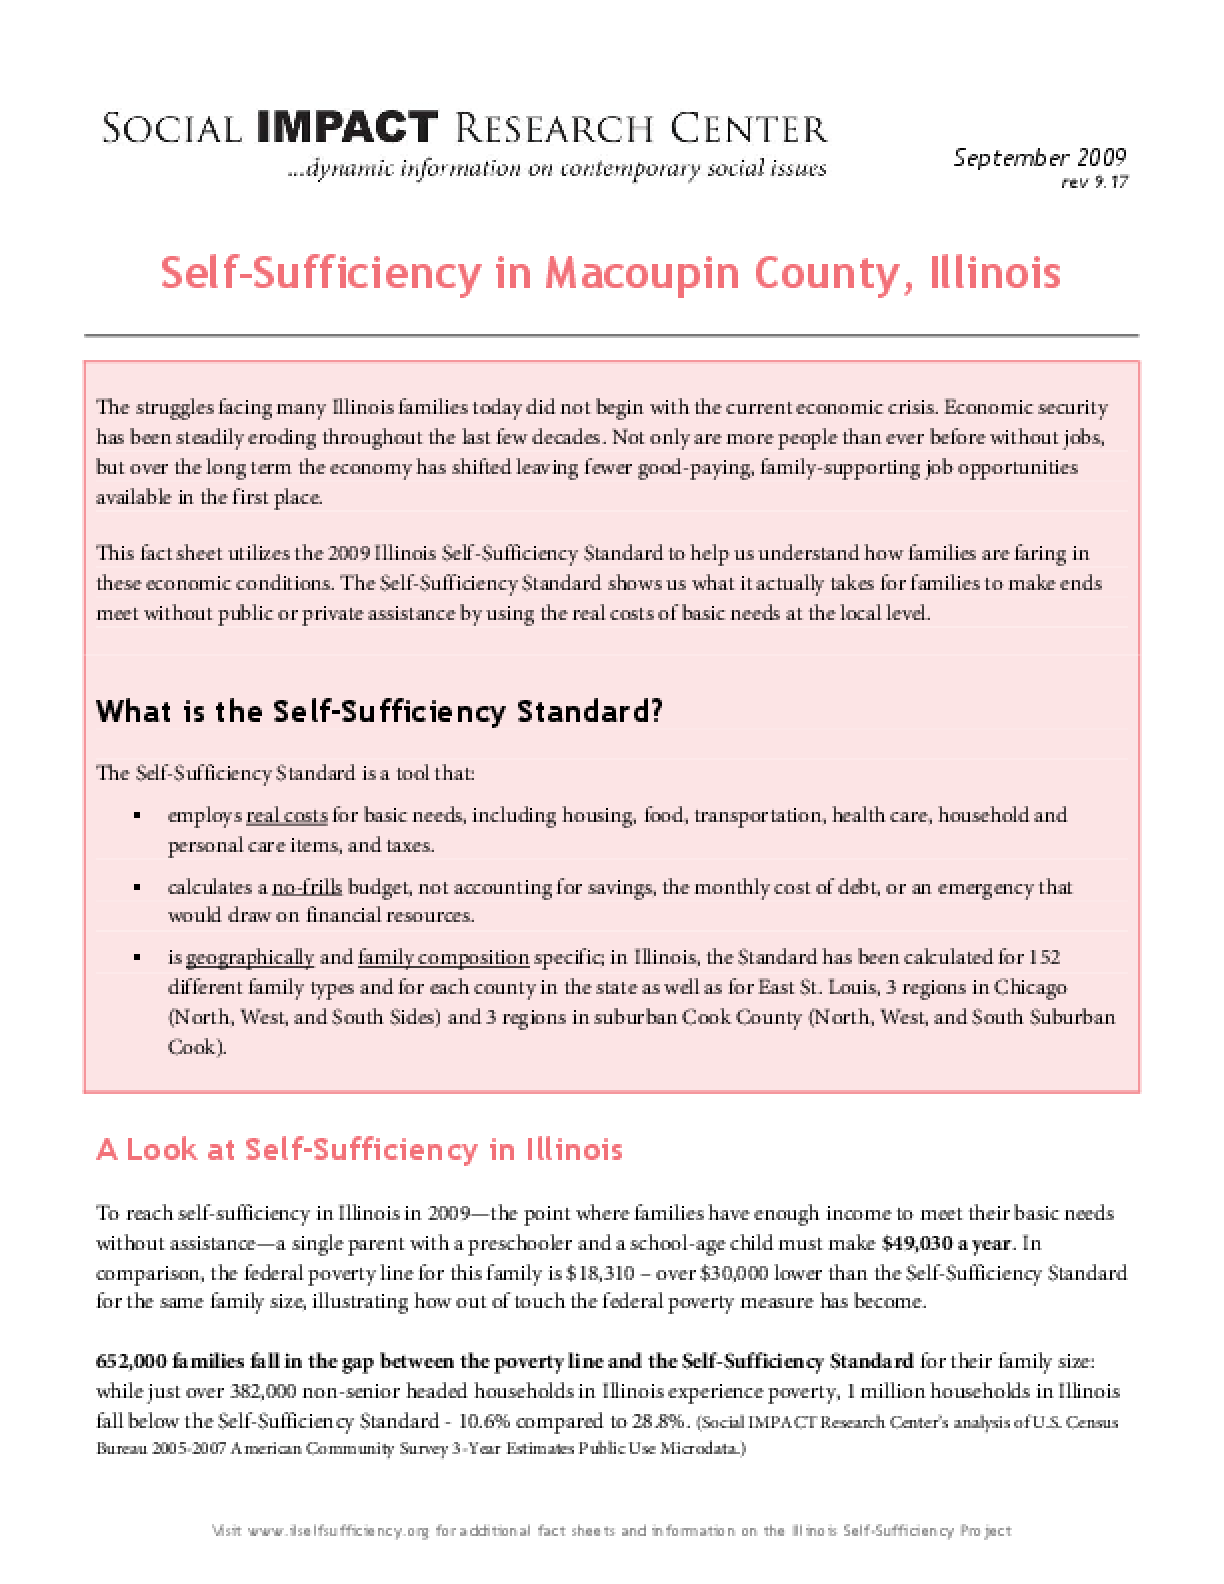 Self-Sufficiency in Macoupin County, Illinois